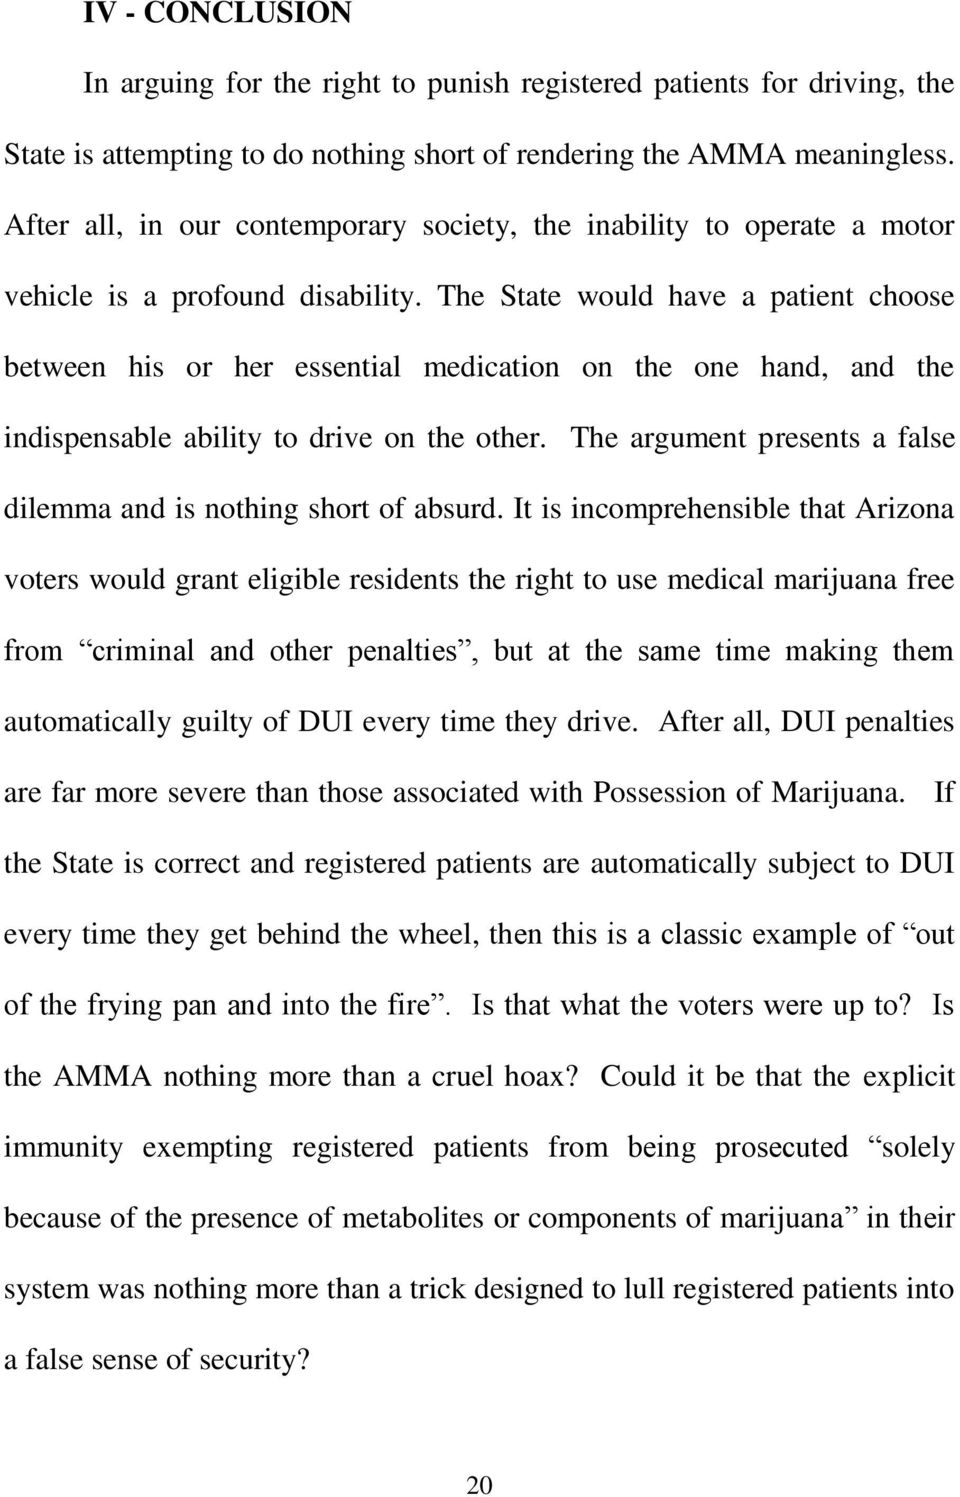 The State would have a patient choose between his or her essential medication on the one hand, and the indispensable ability to drive on the other.